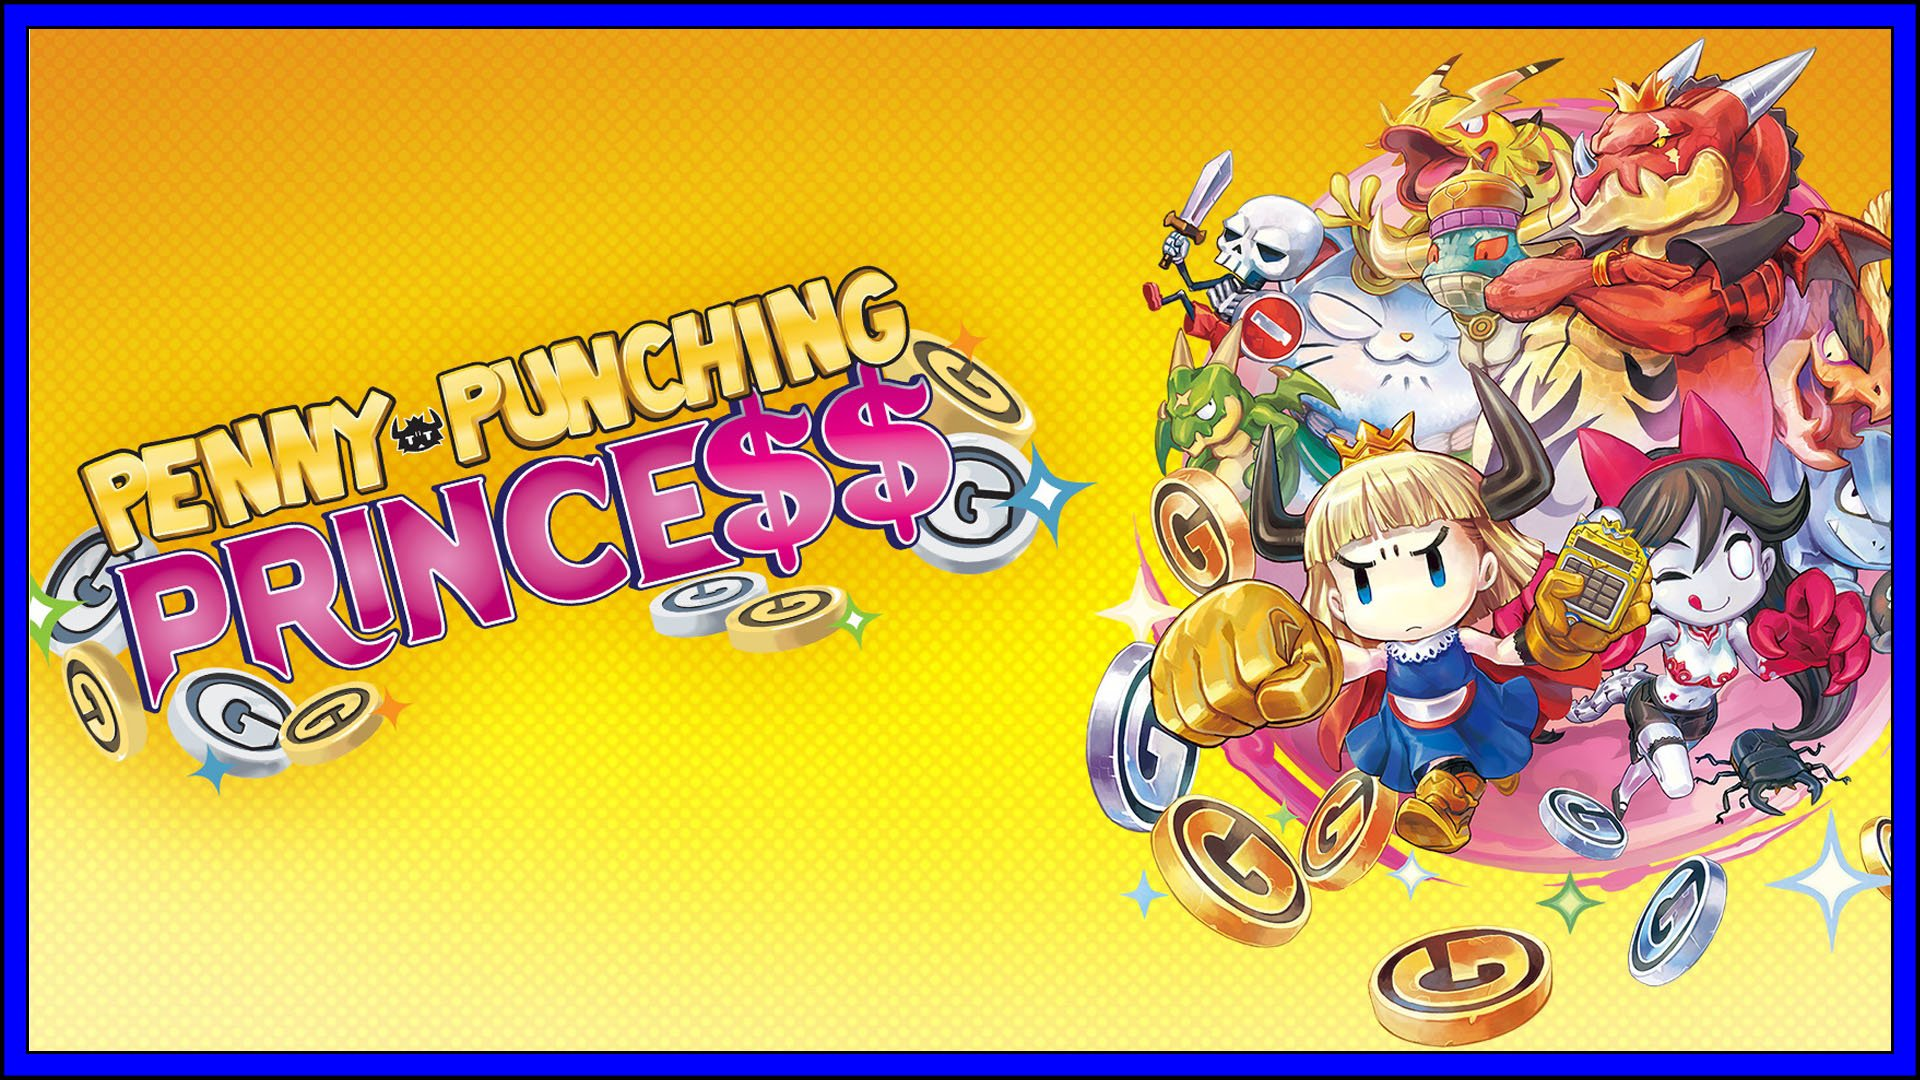 Penny Punching Princess Fi3